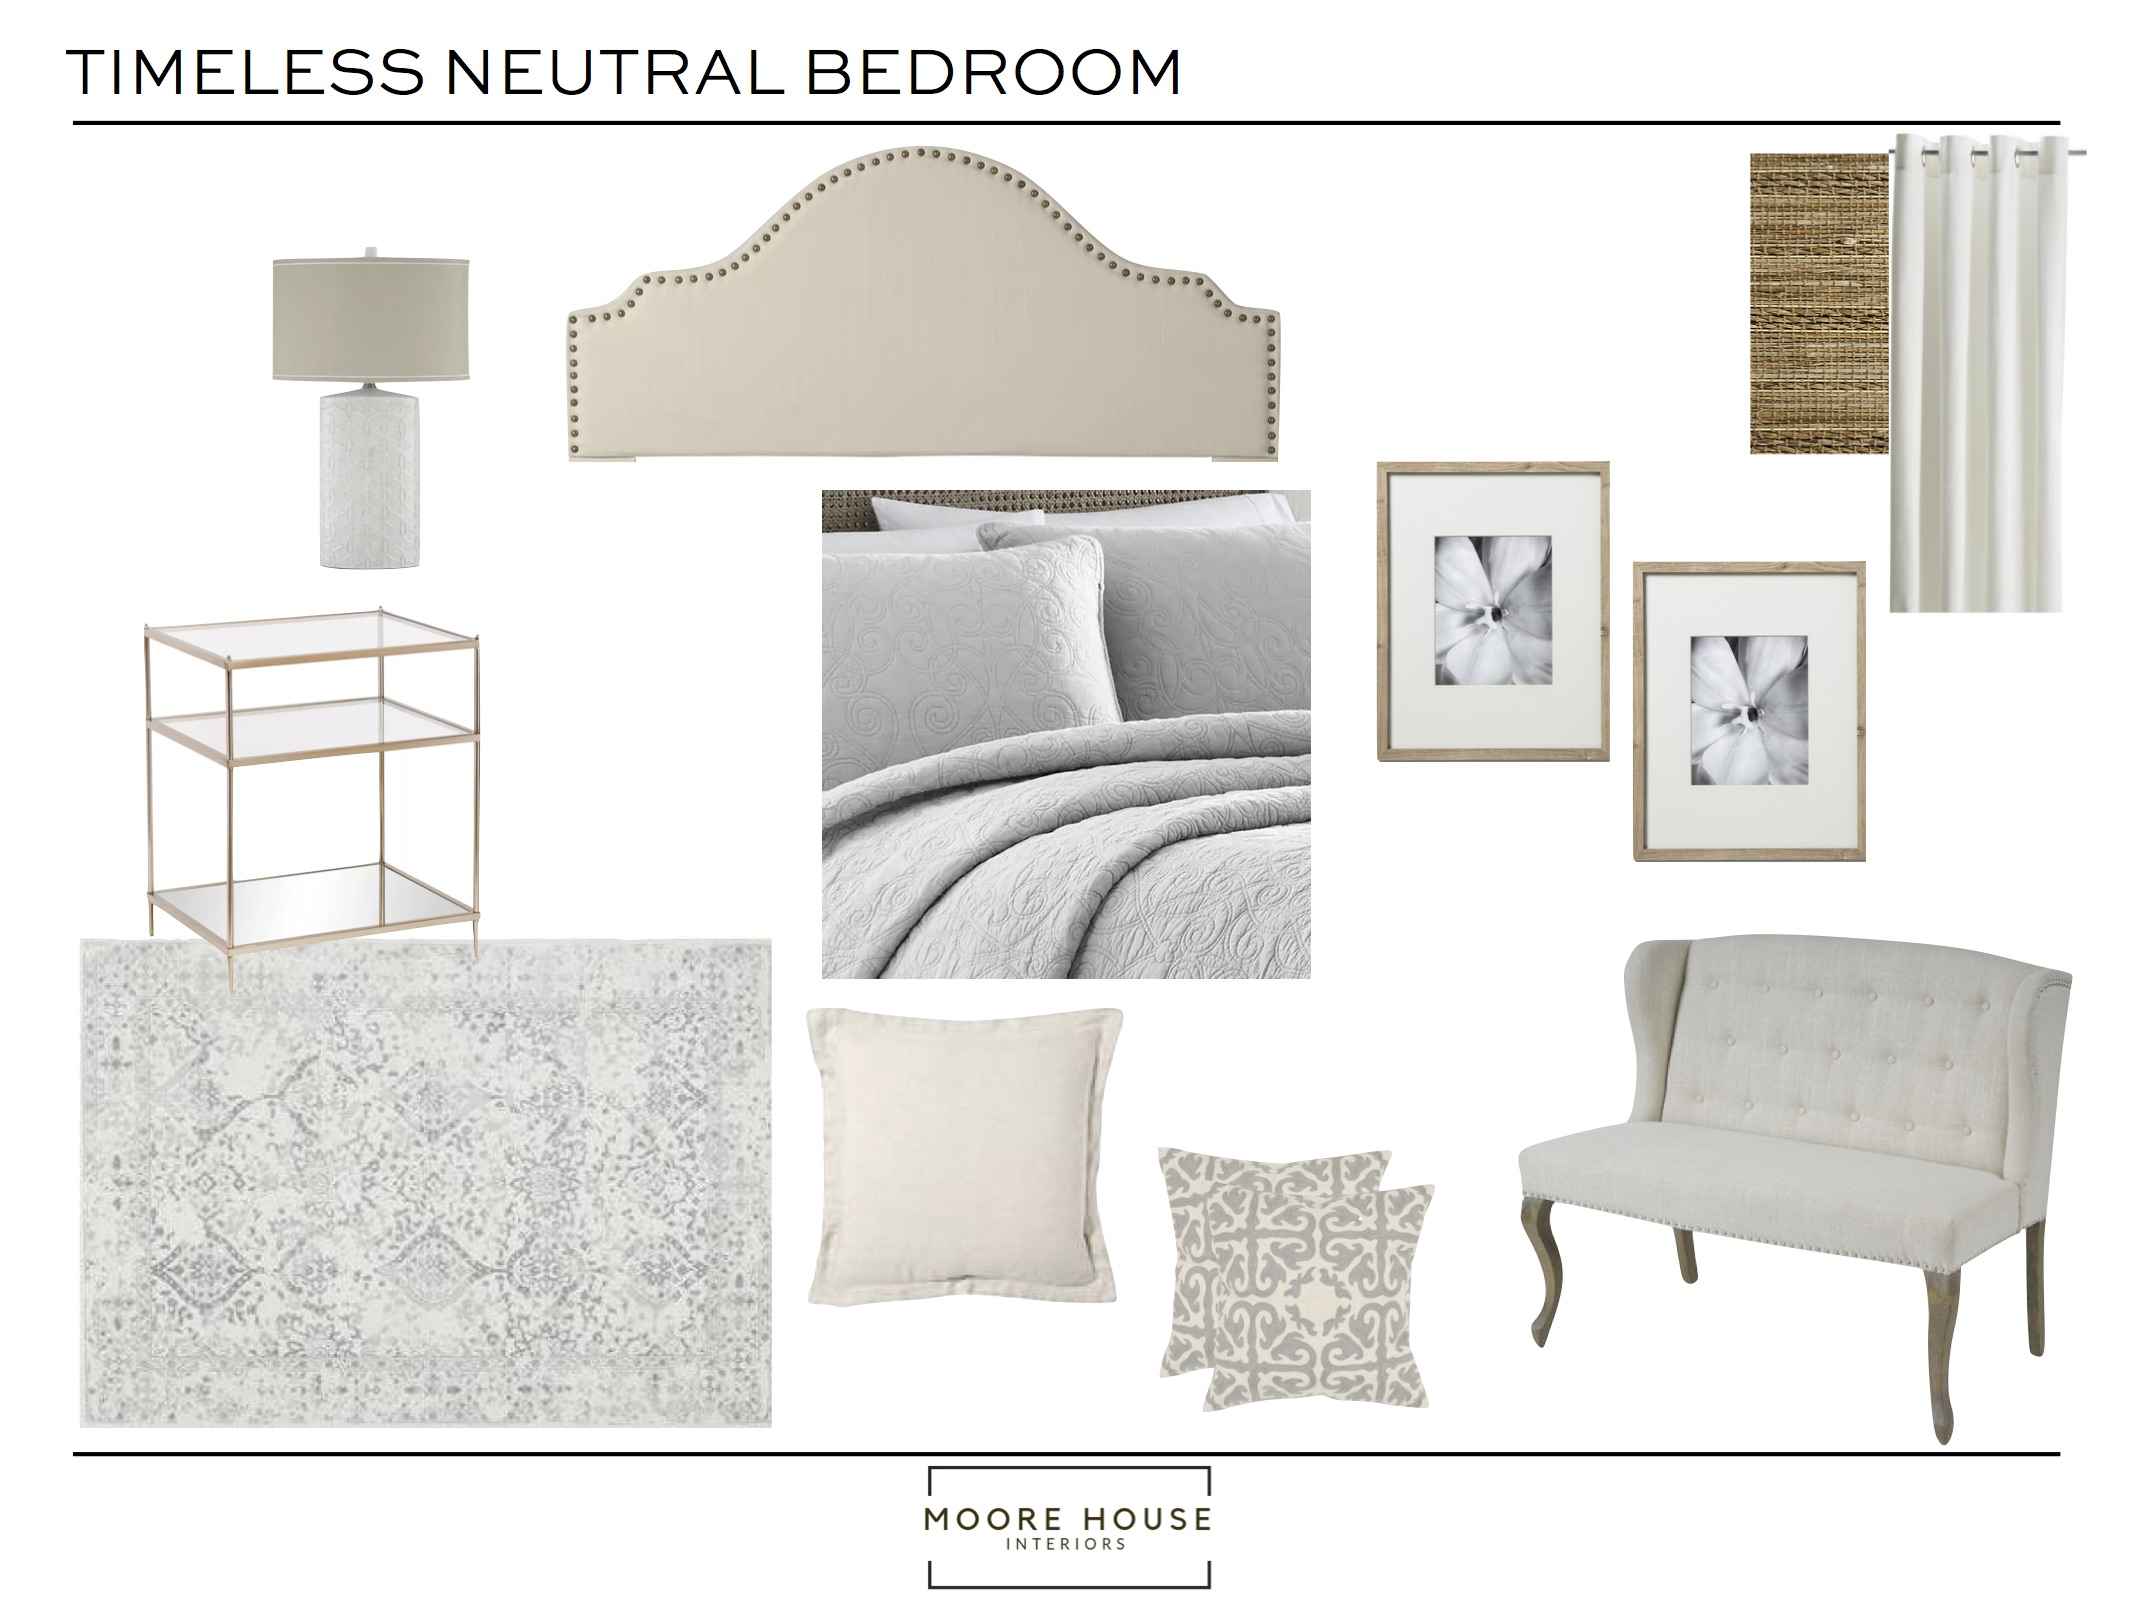 TIMELESS NEUTRAL BEDROOM JPG.jpg